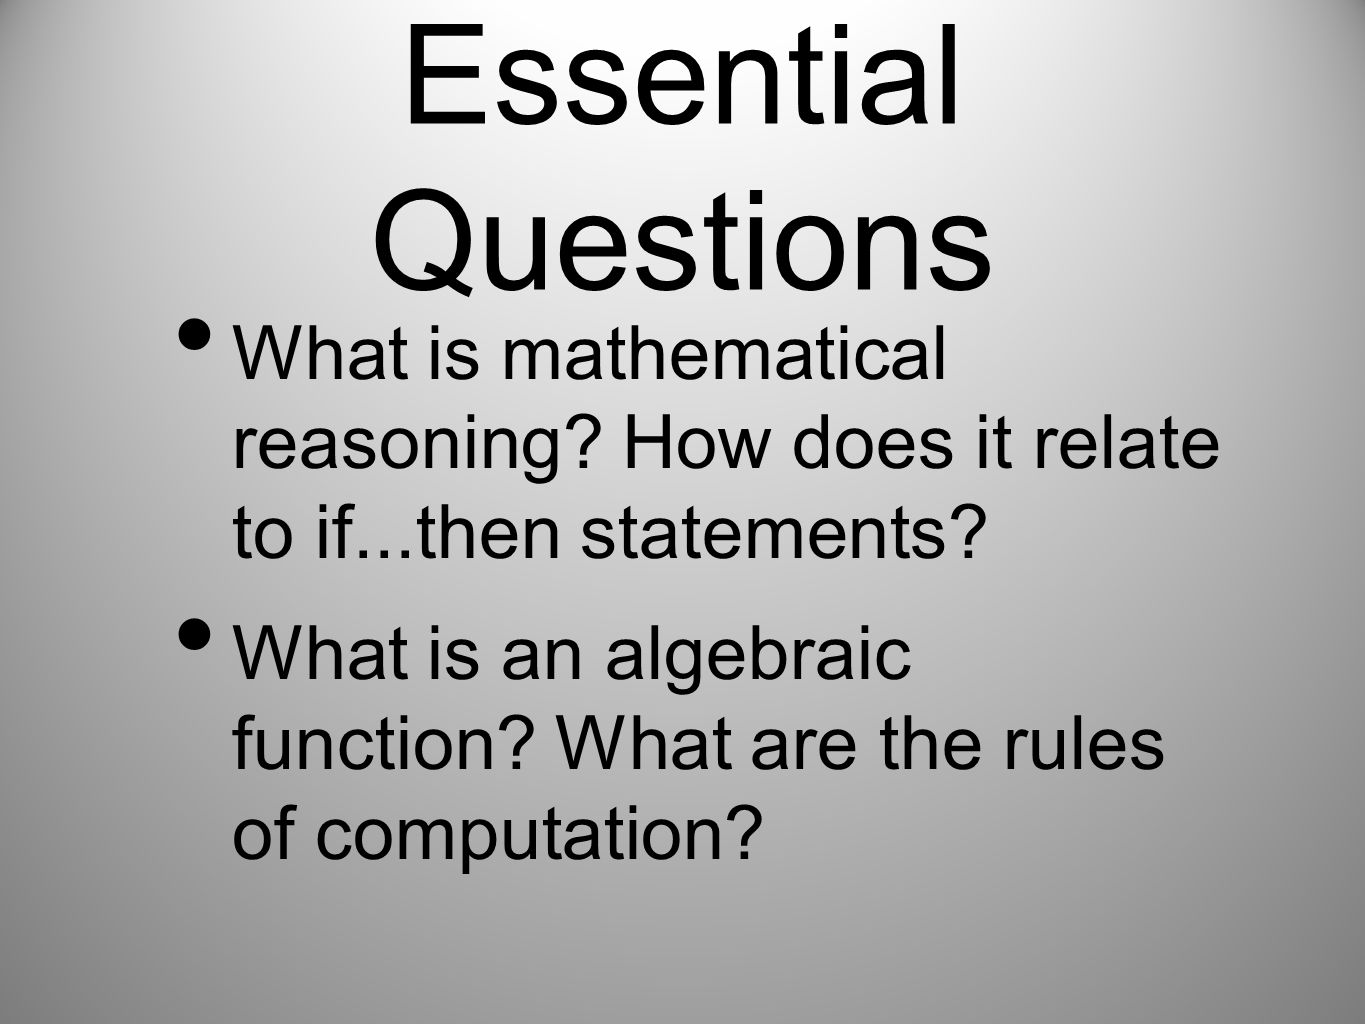 Essential Questions What is mathematical reasoning? How does it relate to if...then statements? What is an algebraic function? What are the rules of c